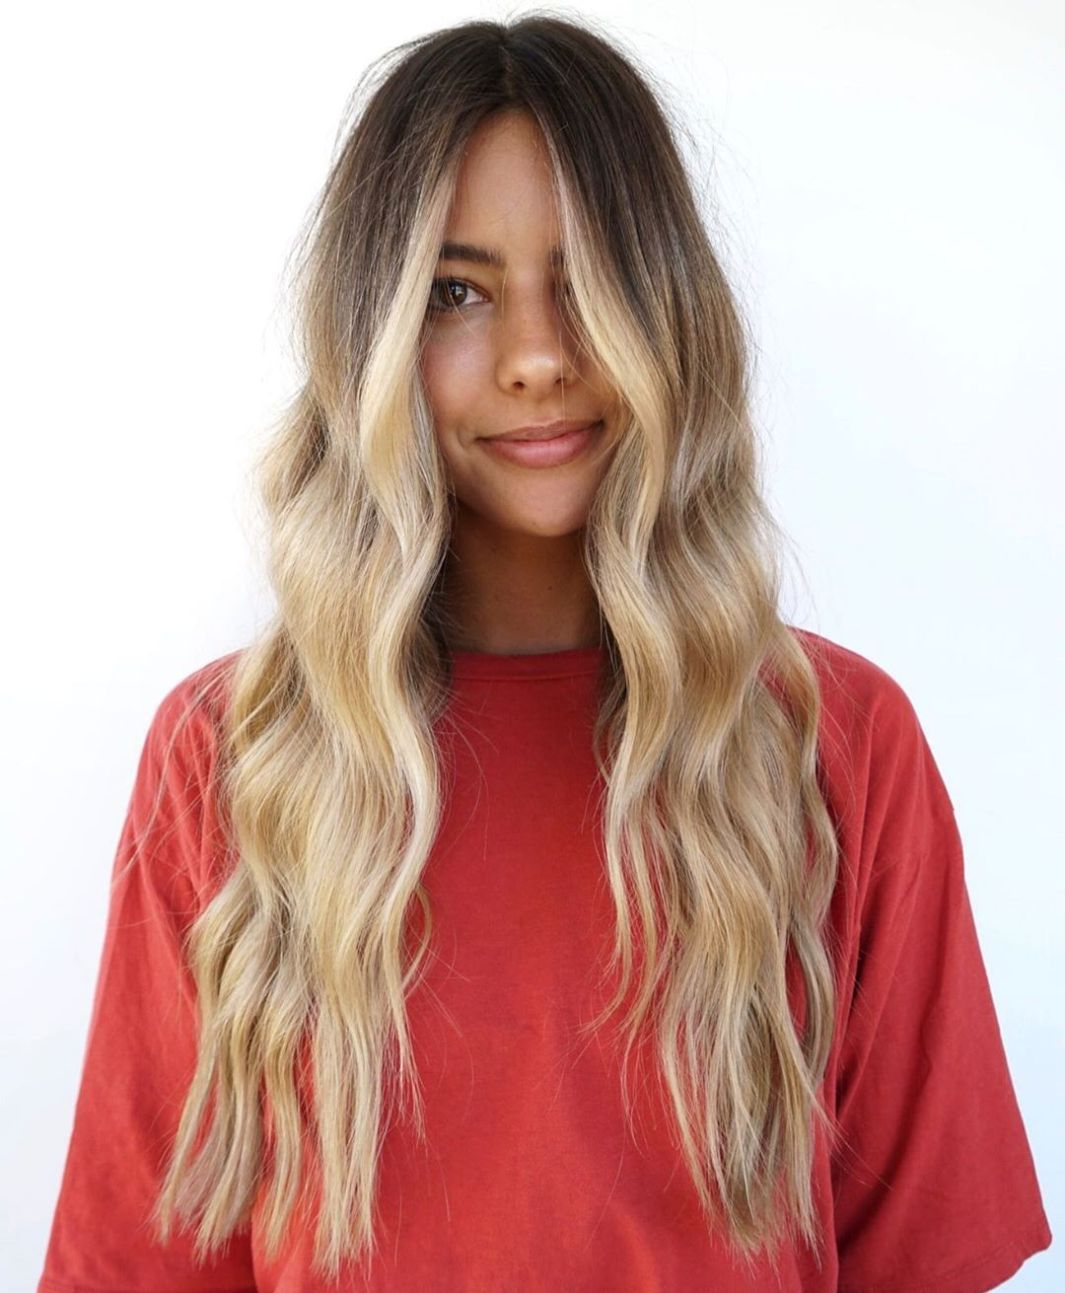 What Are The Best Hair Colors For Tan Skin Hair Adviser Hair Color For Tan Skin Olive Skin Blonde Hair Skin Tone Hair Color